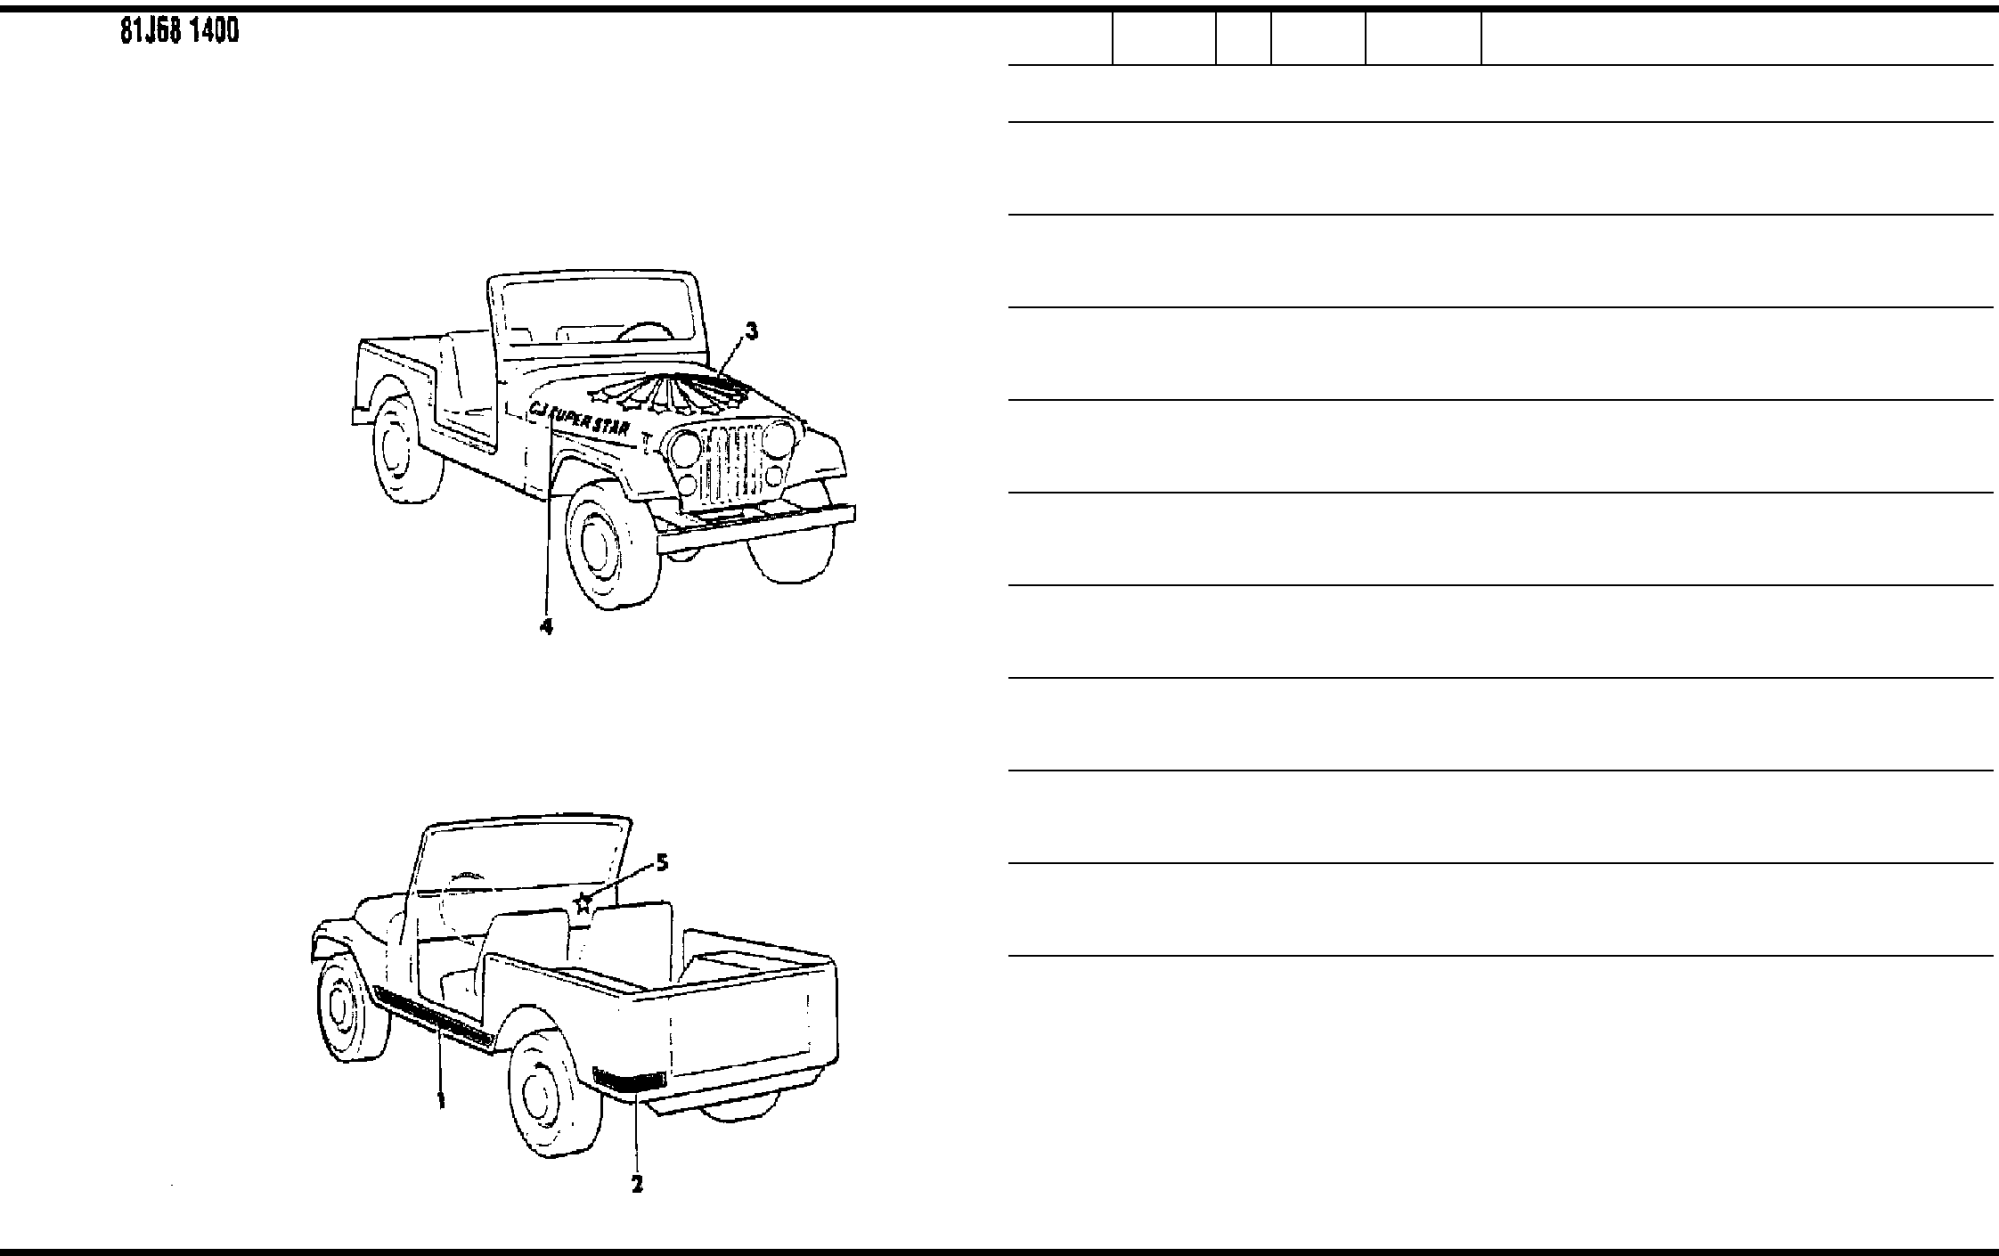 hight resolution of  2006 jeep cherokee 1984 1986 misc doents parts catalogue pdf on jeep cj7 engine wiring harness diagram